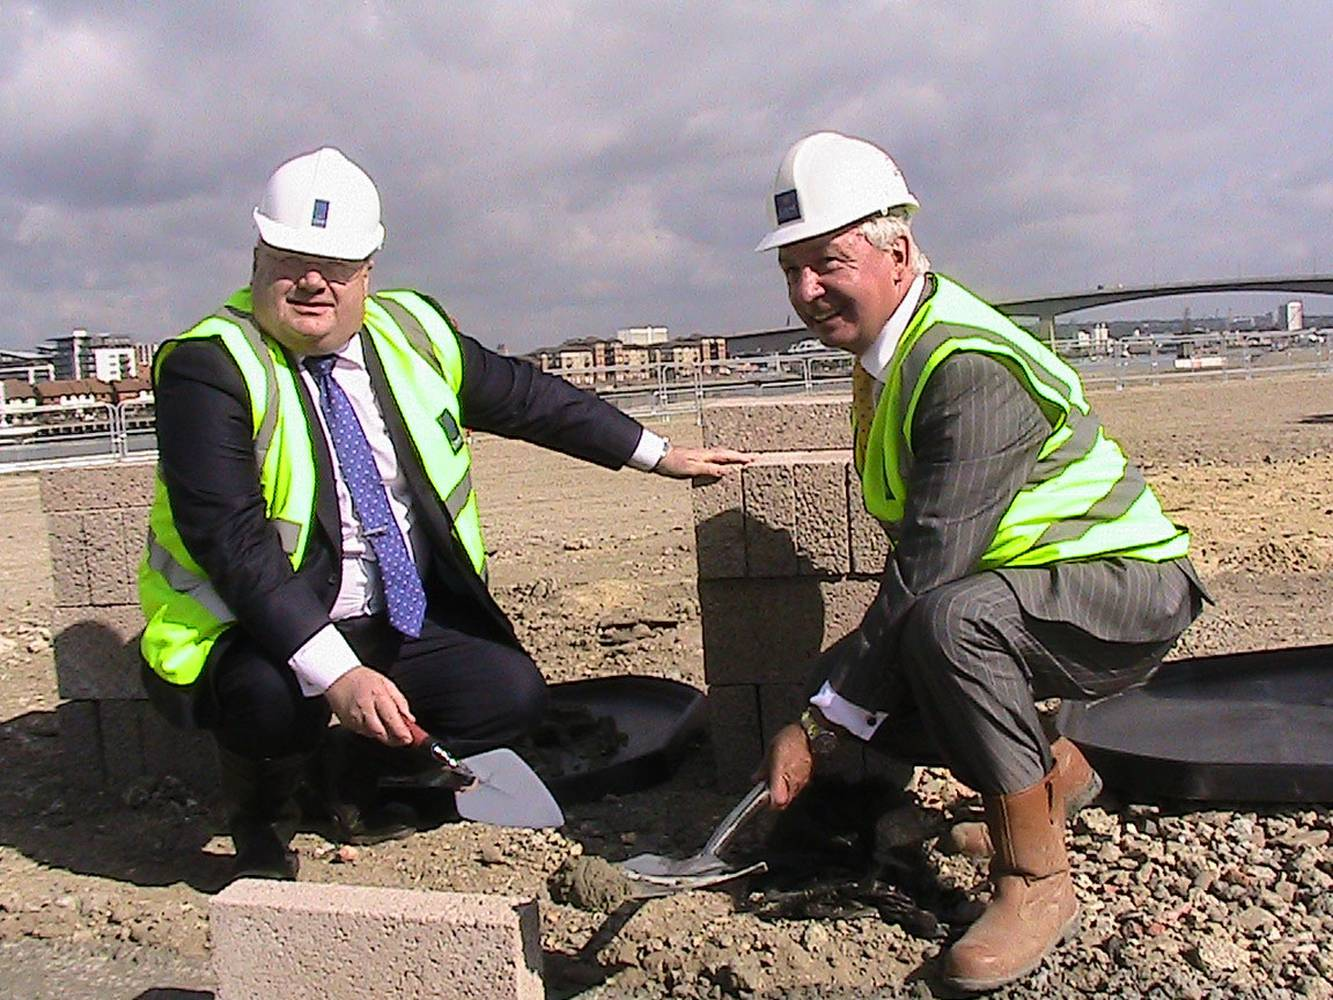 <p>Eric Pickles lays the foundations for new homes in Southampton. <em>Image credit Department for Communities and Local Government</em></p>